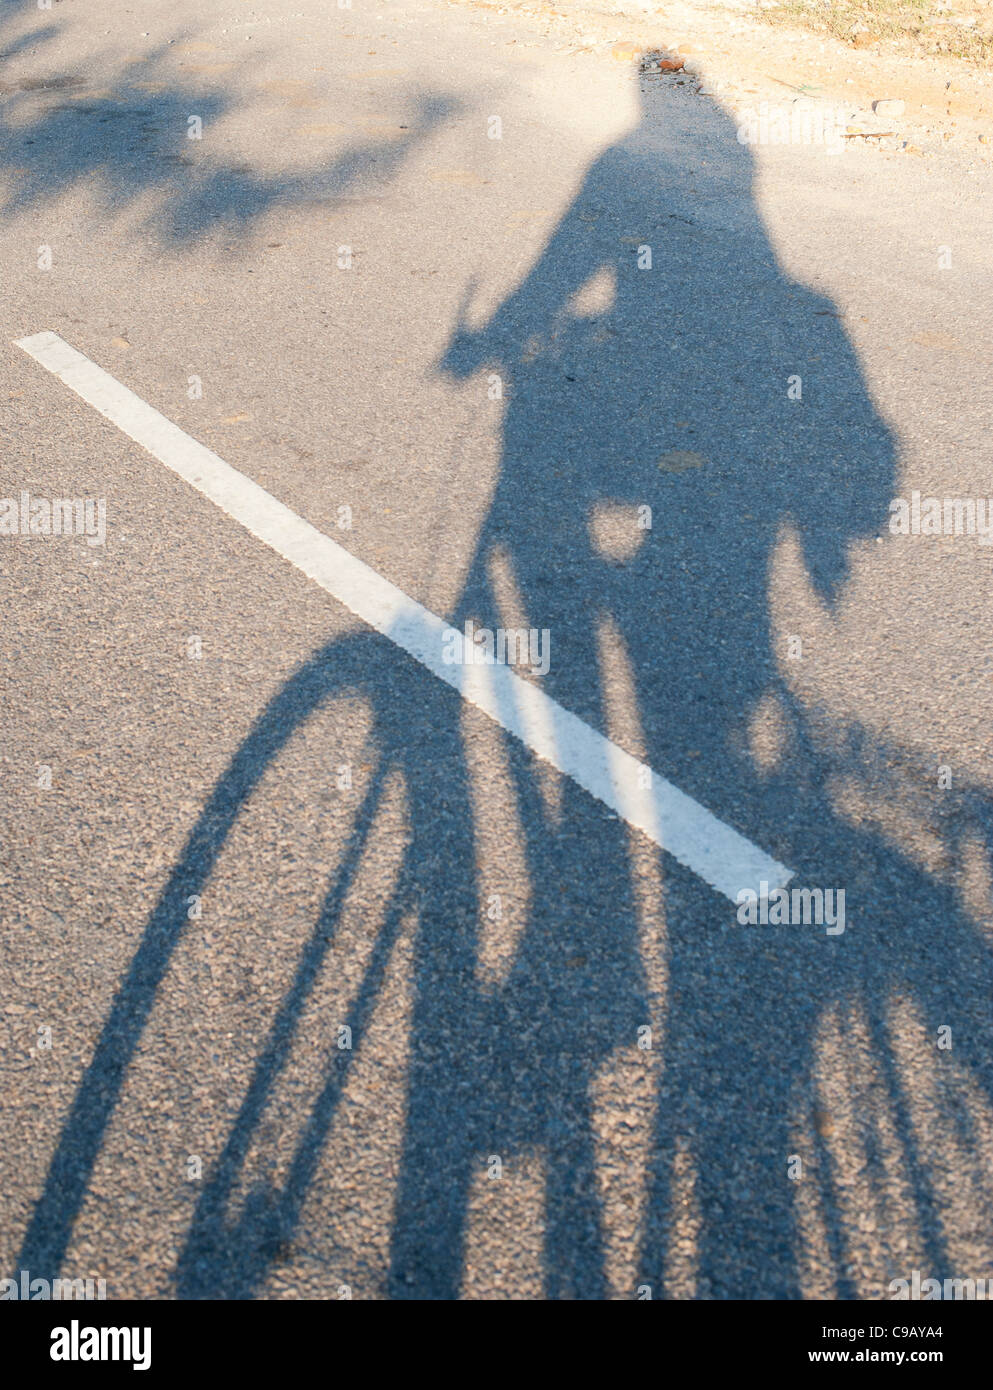 Man riding bicycle shadow on a road. India - Stock Image